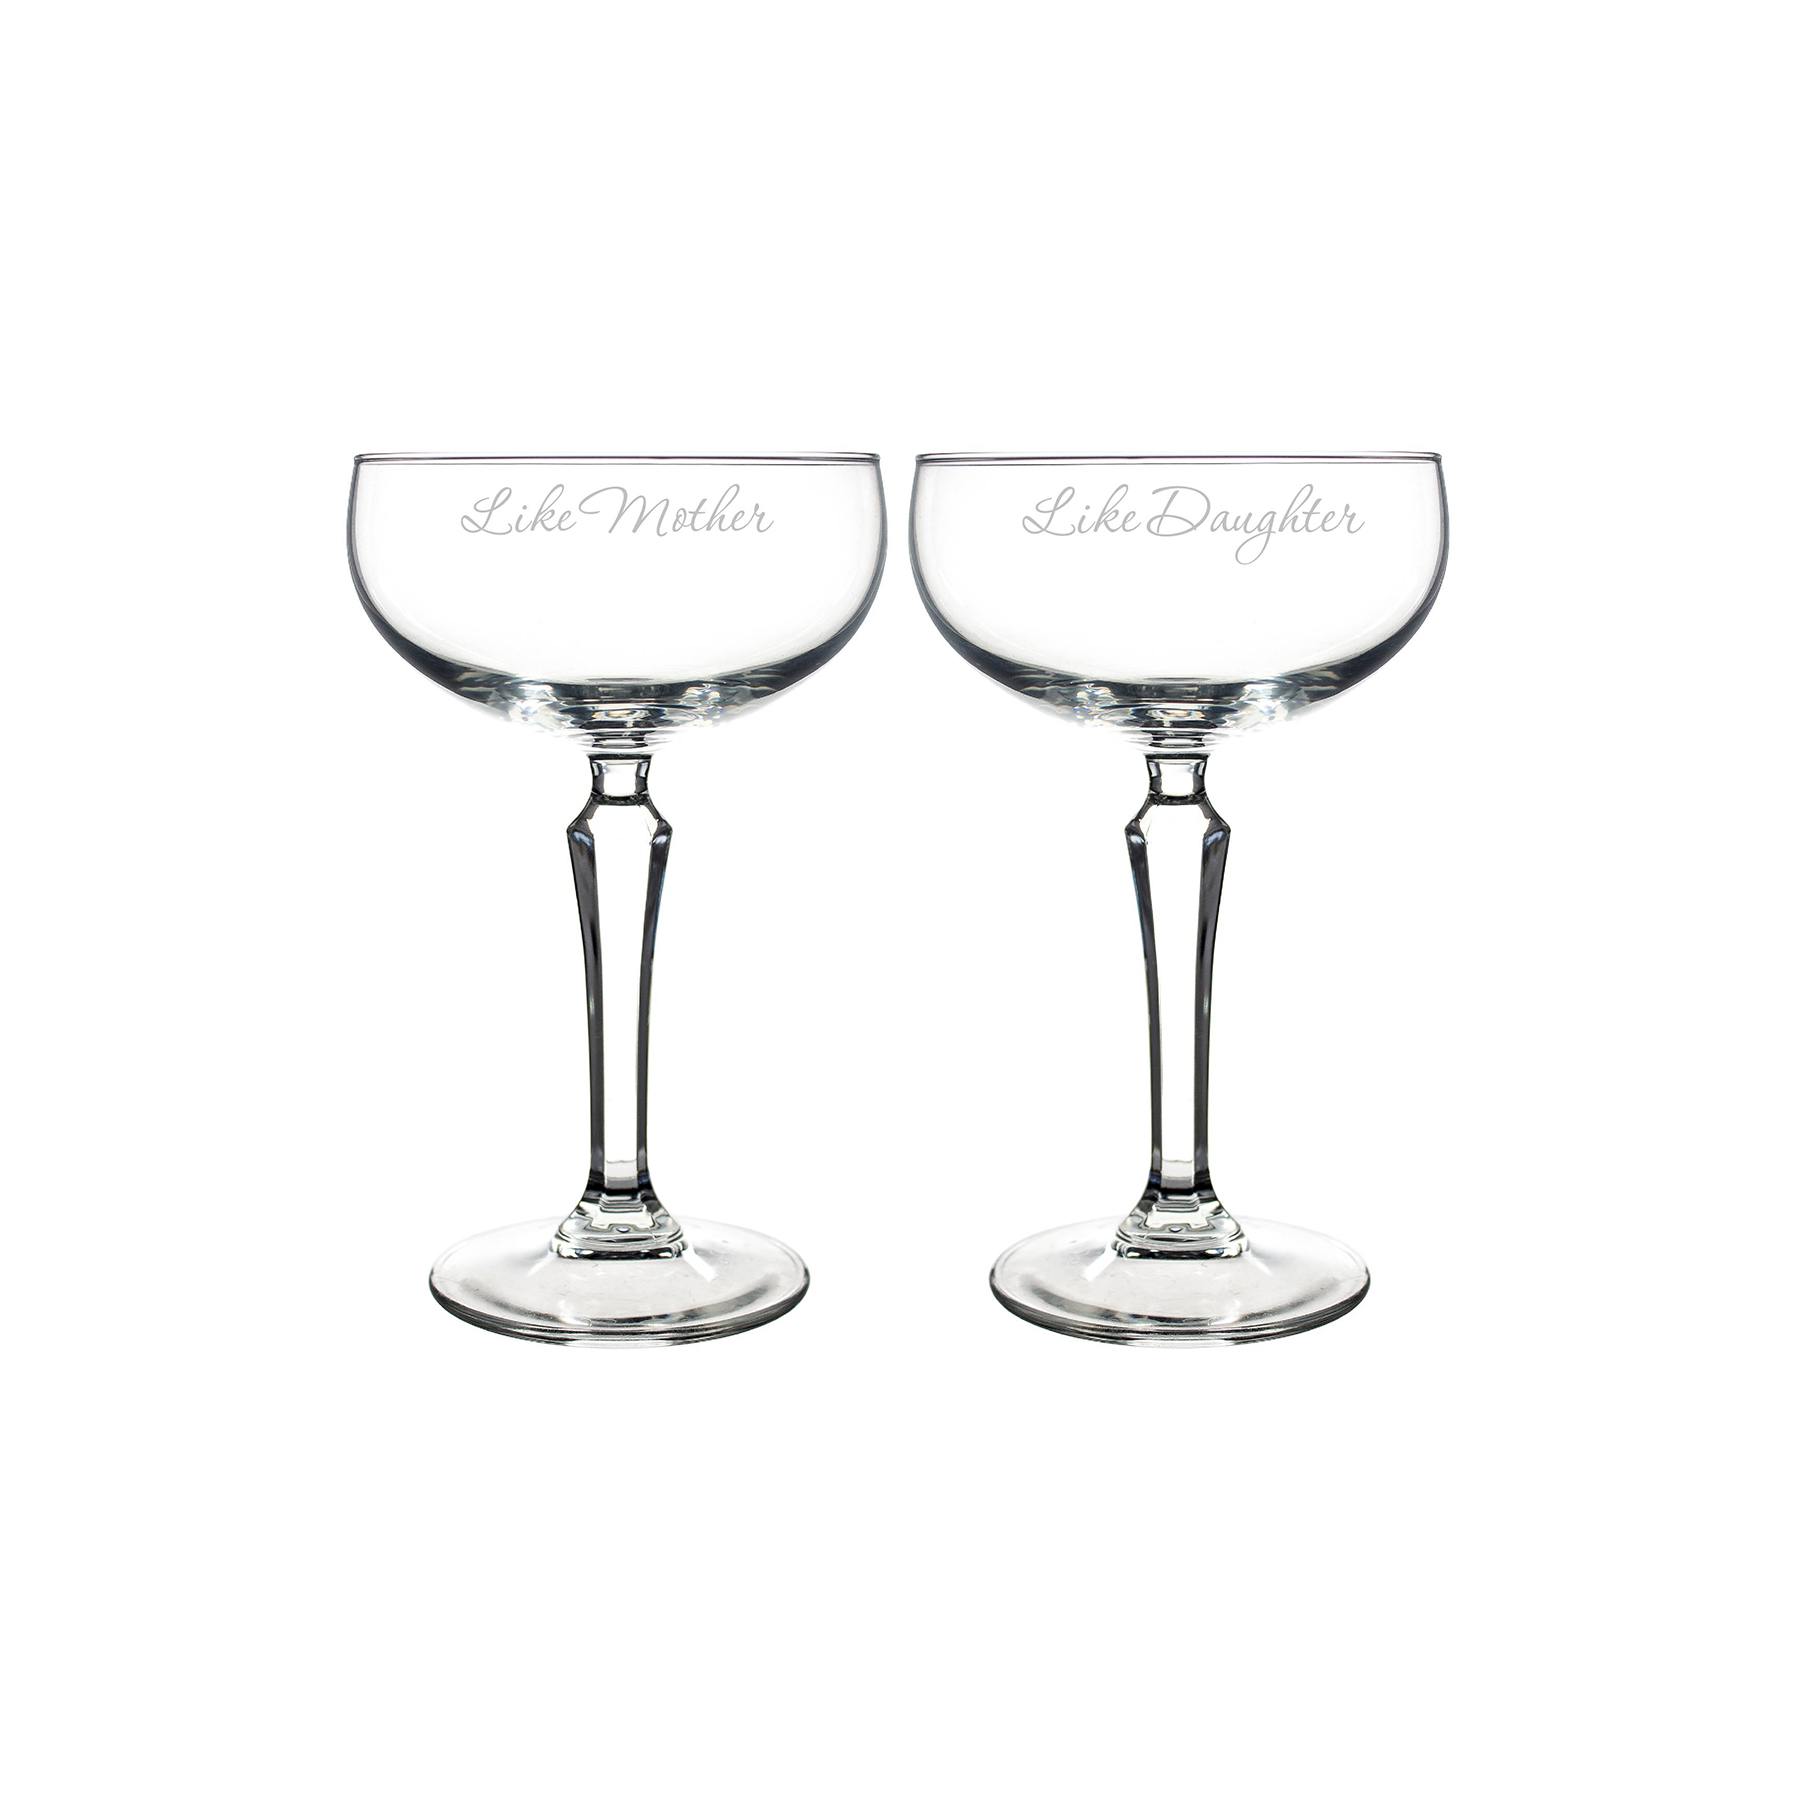 Like Mother, Like Daughter Champagne Glasses